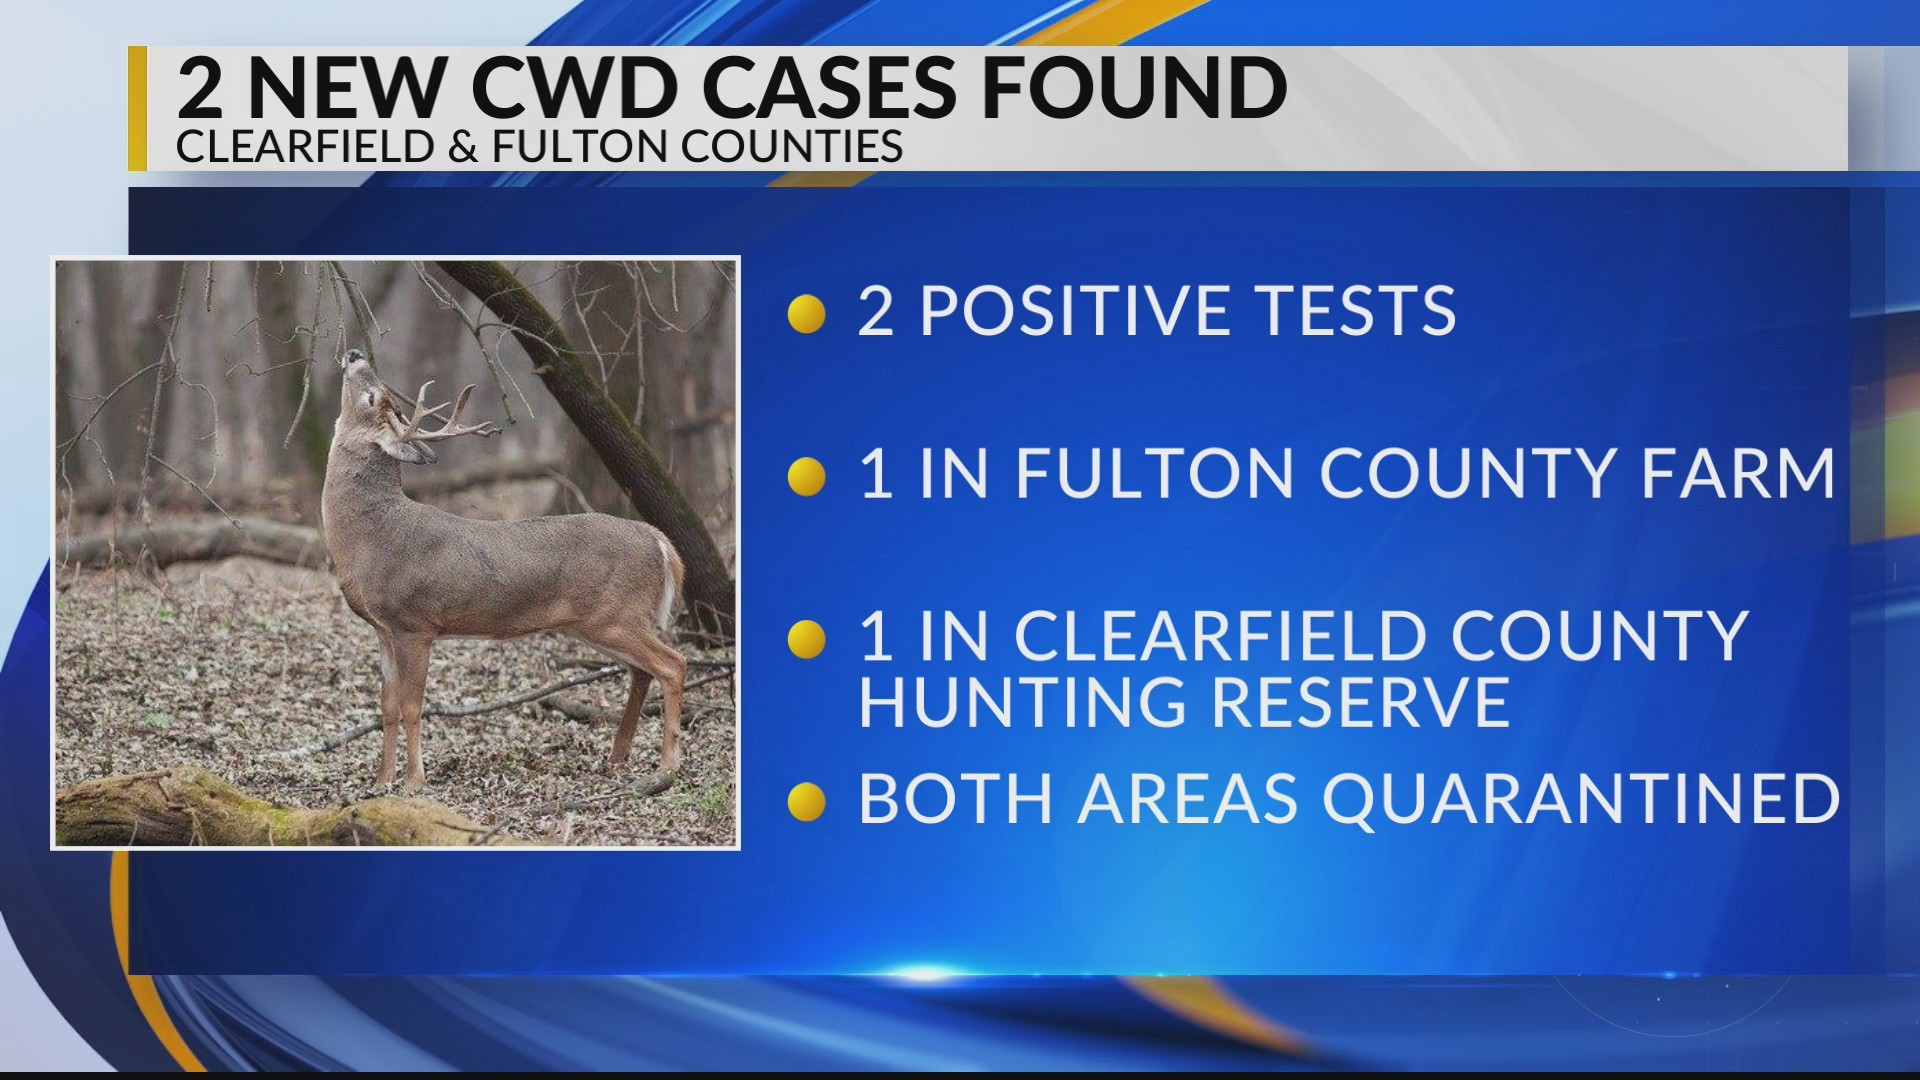 Two new CWD cases found